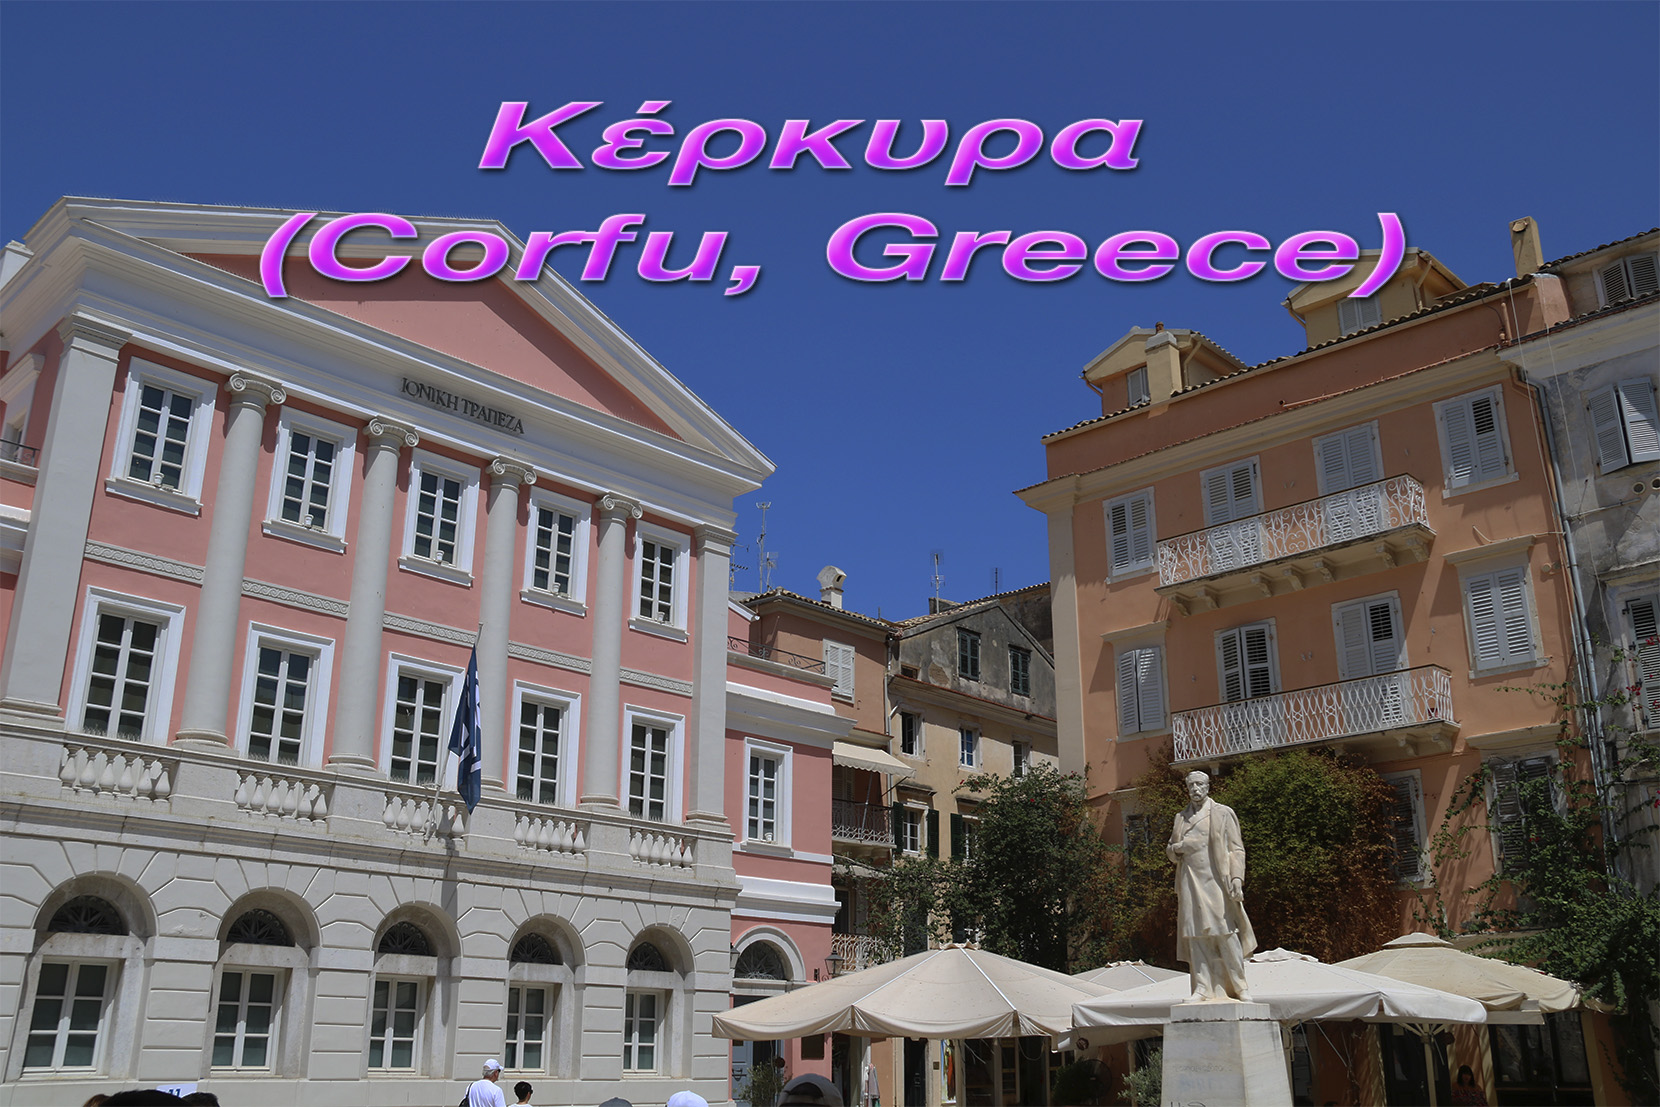 Short trip to Corfu